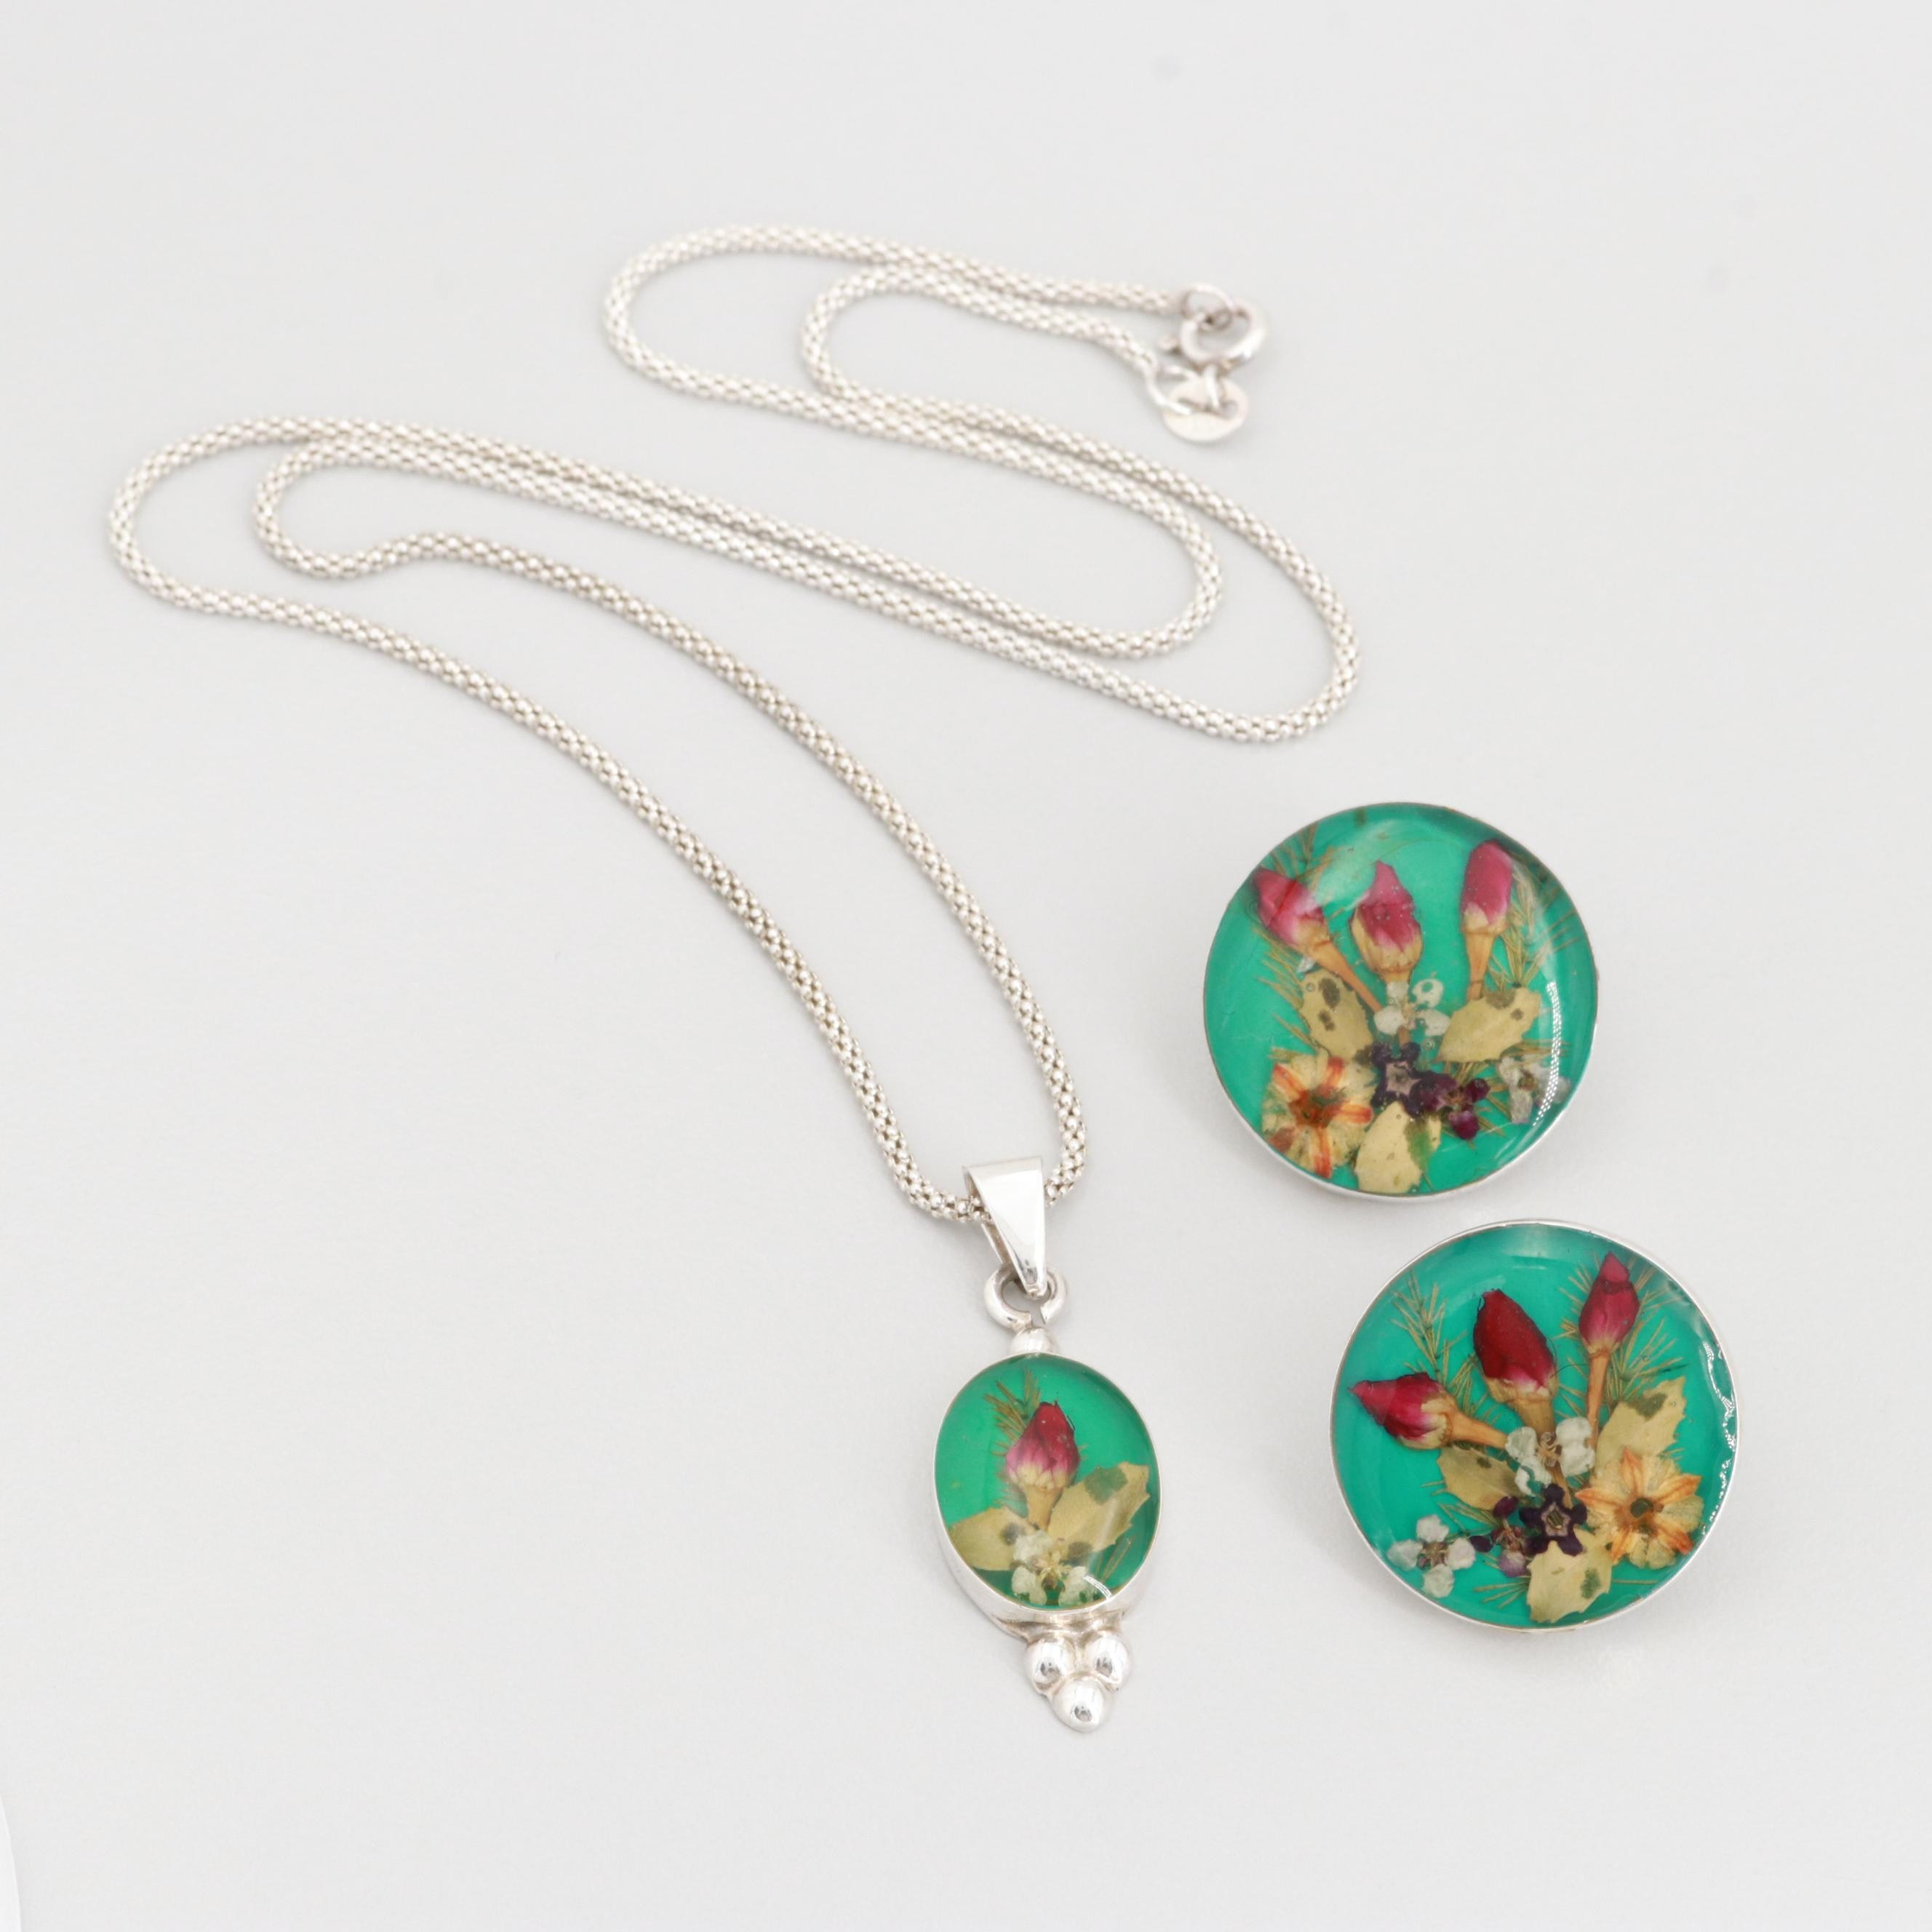 """Taxco Sterling Silver """"Floral Botanical Under Resin""""Necklace and Earrings"""